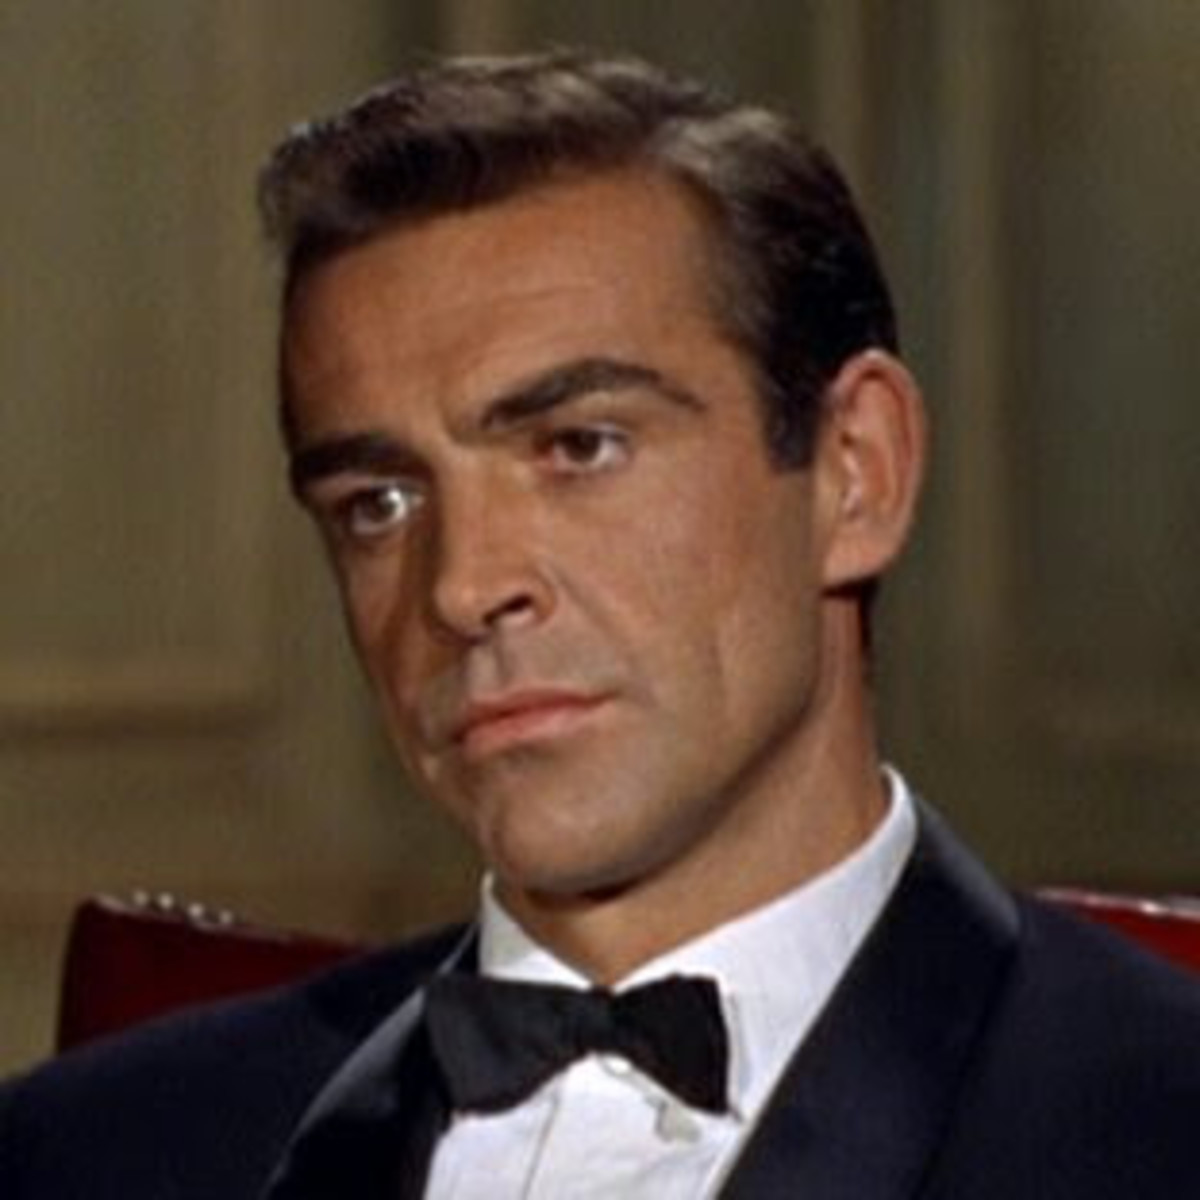 It's impossible to imagine anyone else playing Bond as well as Sean Connery...